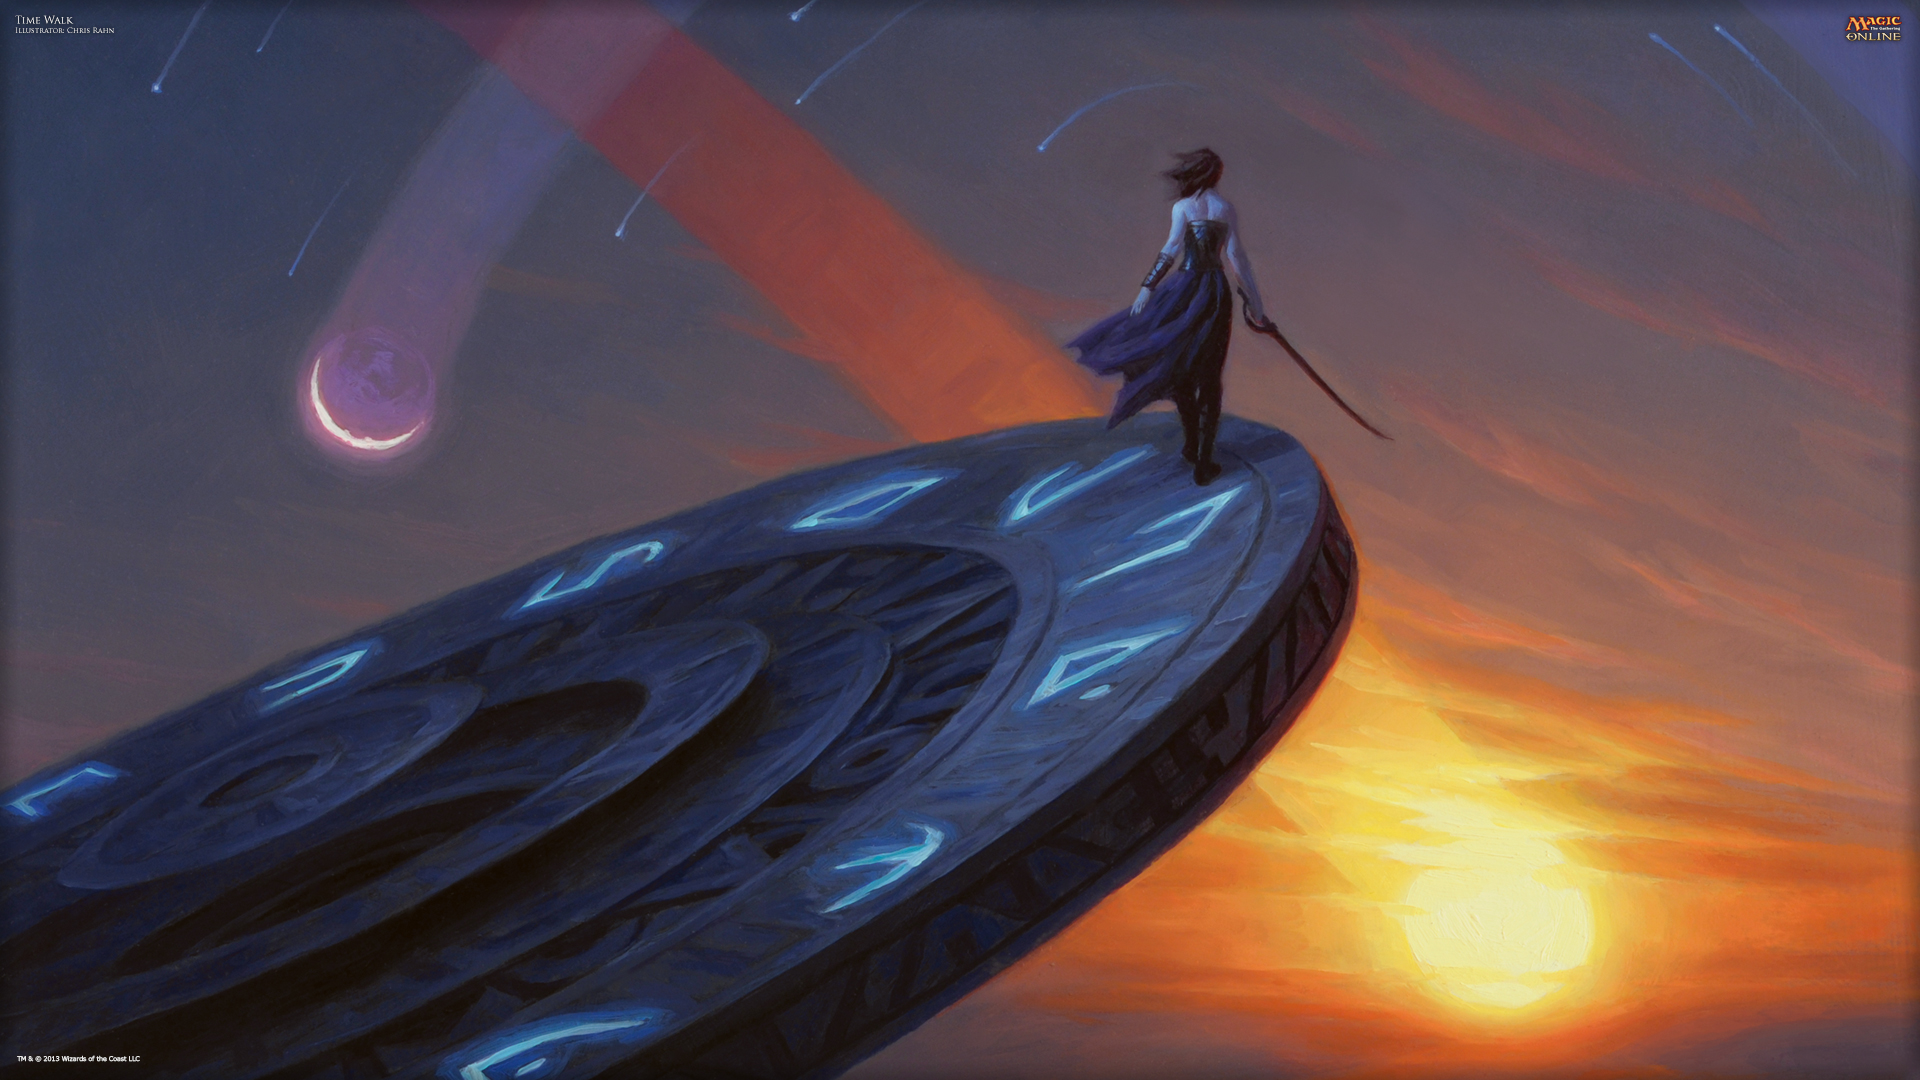 TimeWalk_MTGO_1920x1080_Wallpaper.jpg